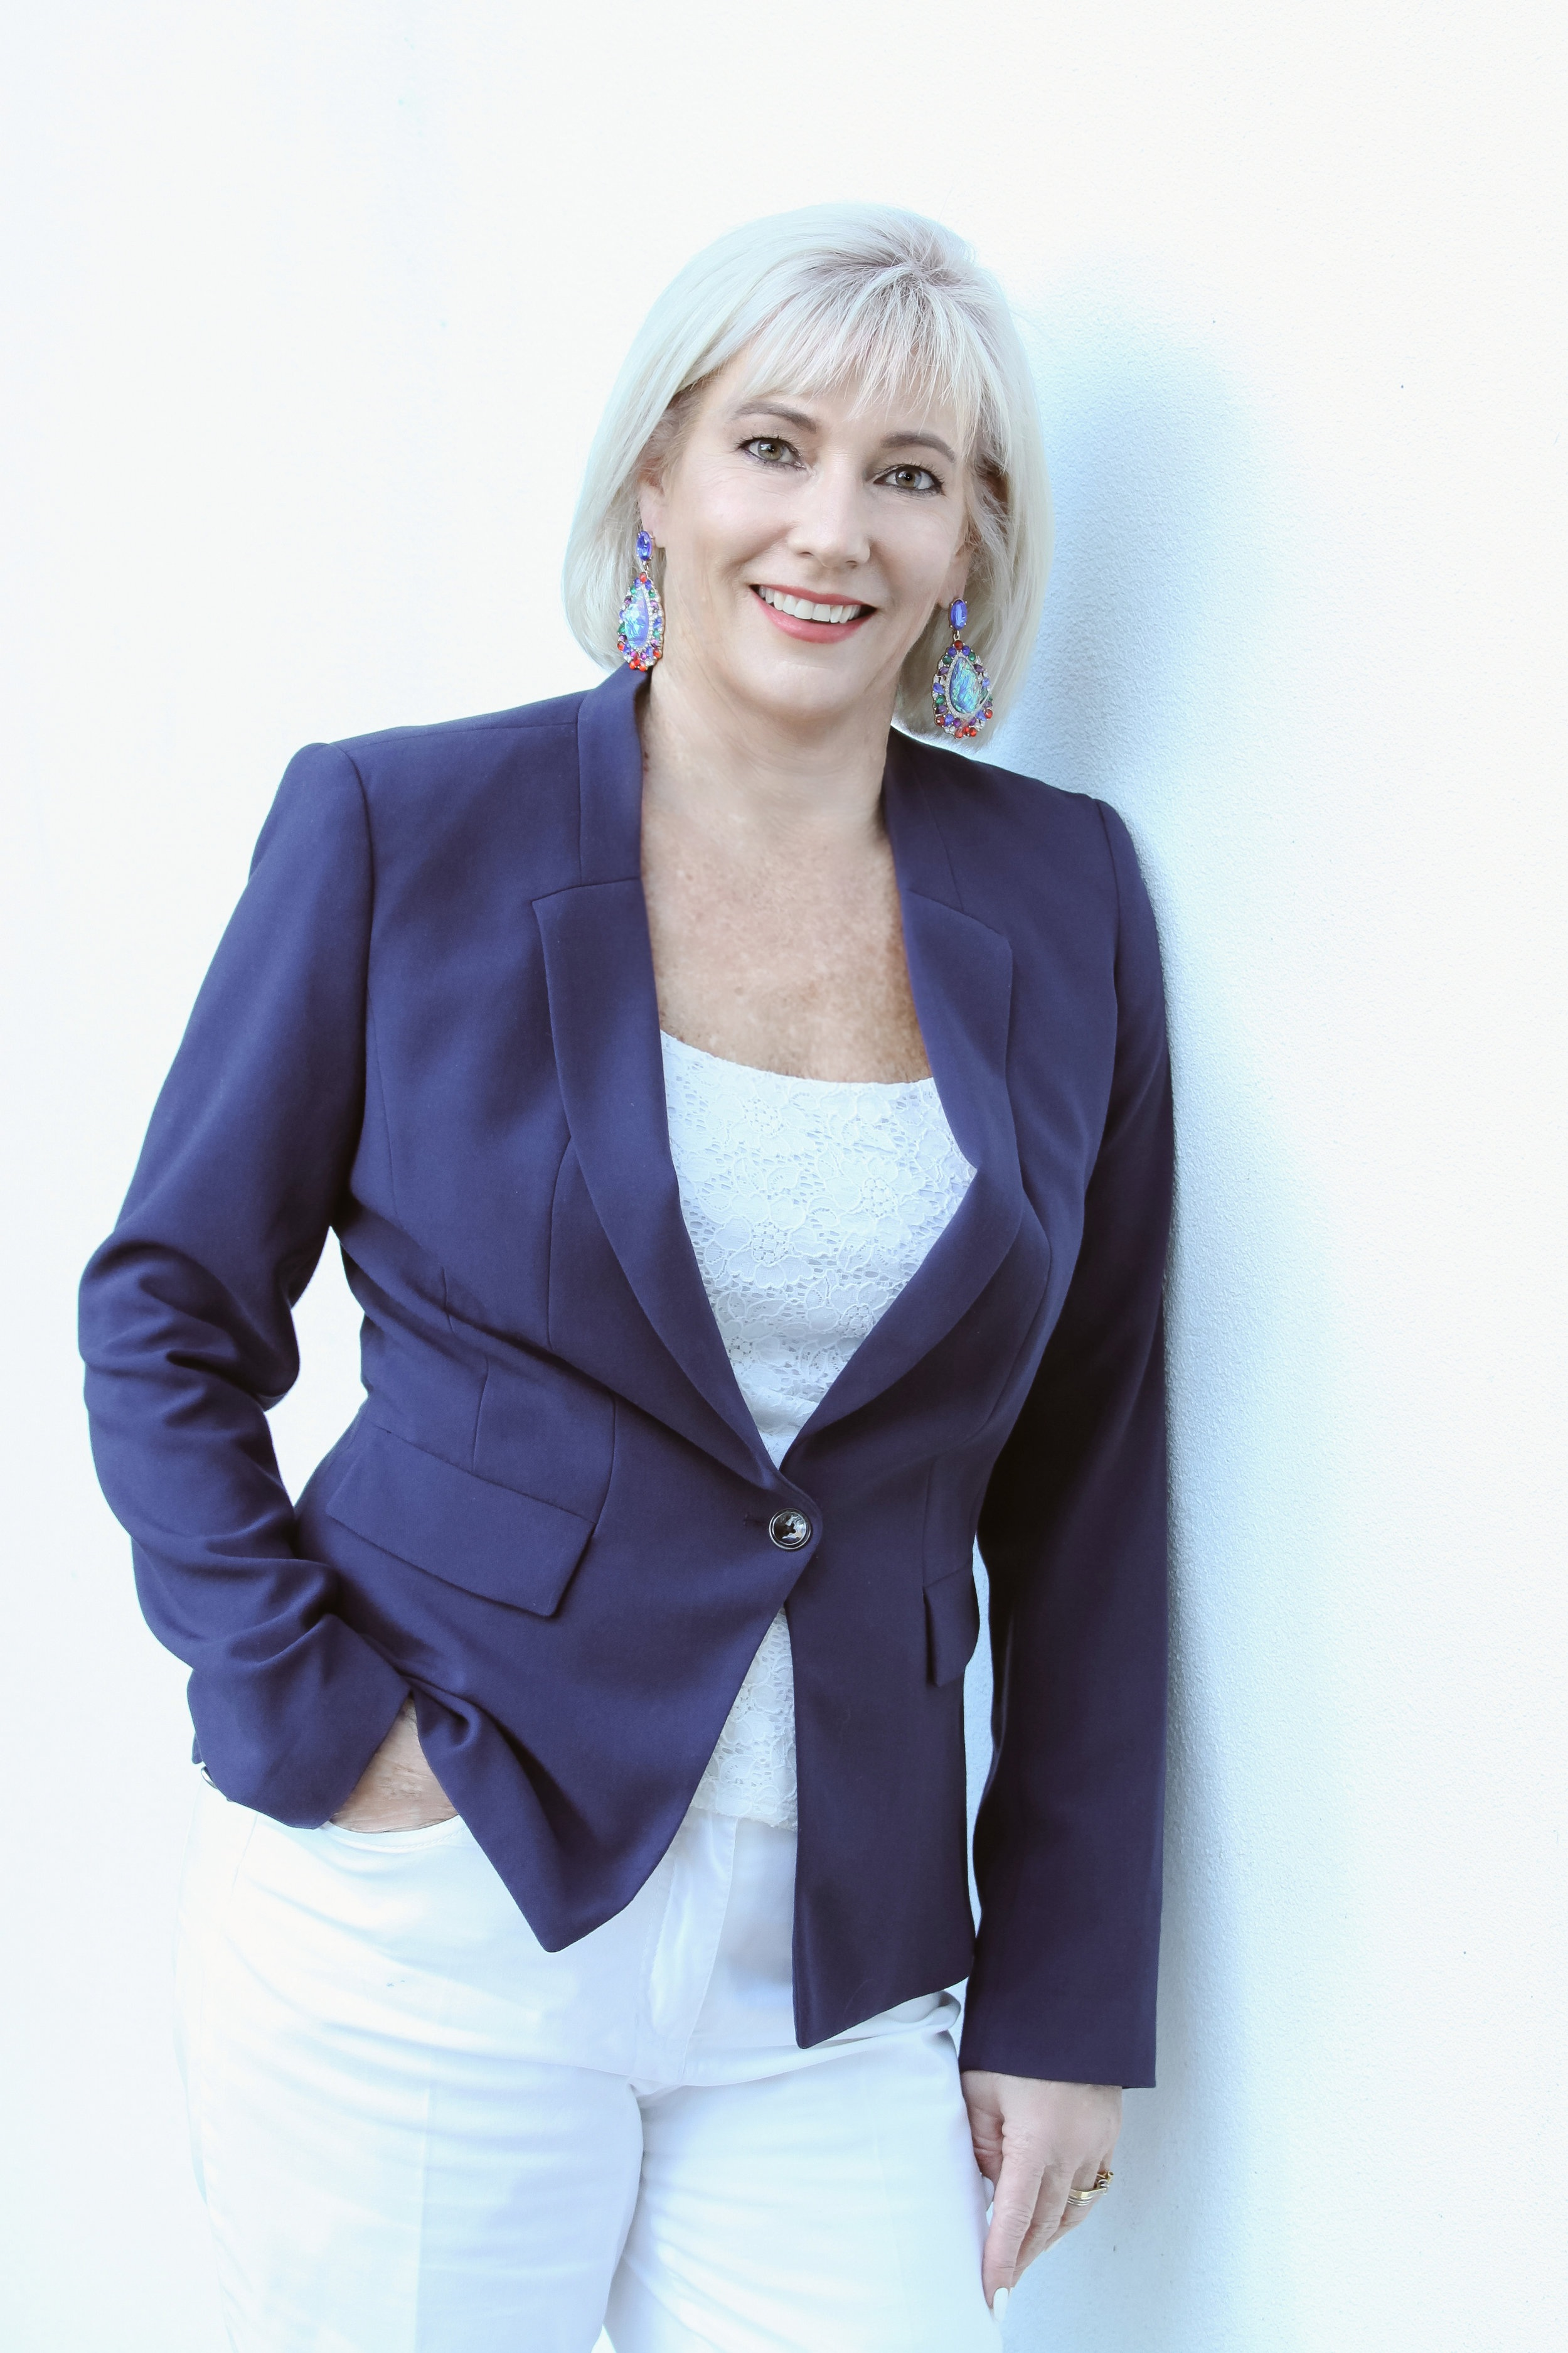 - With her vast financial knowledge and experience, Kathy is able to provide advice and guidance to a wide range of clients. She's been recognised nationally as one of RetireInvest's Top 10 Advisers for the past 14 years.